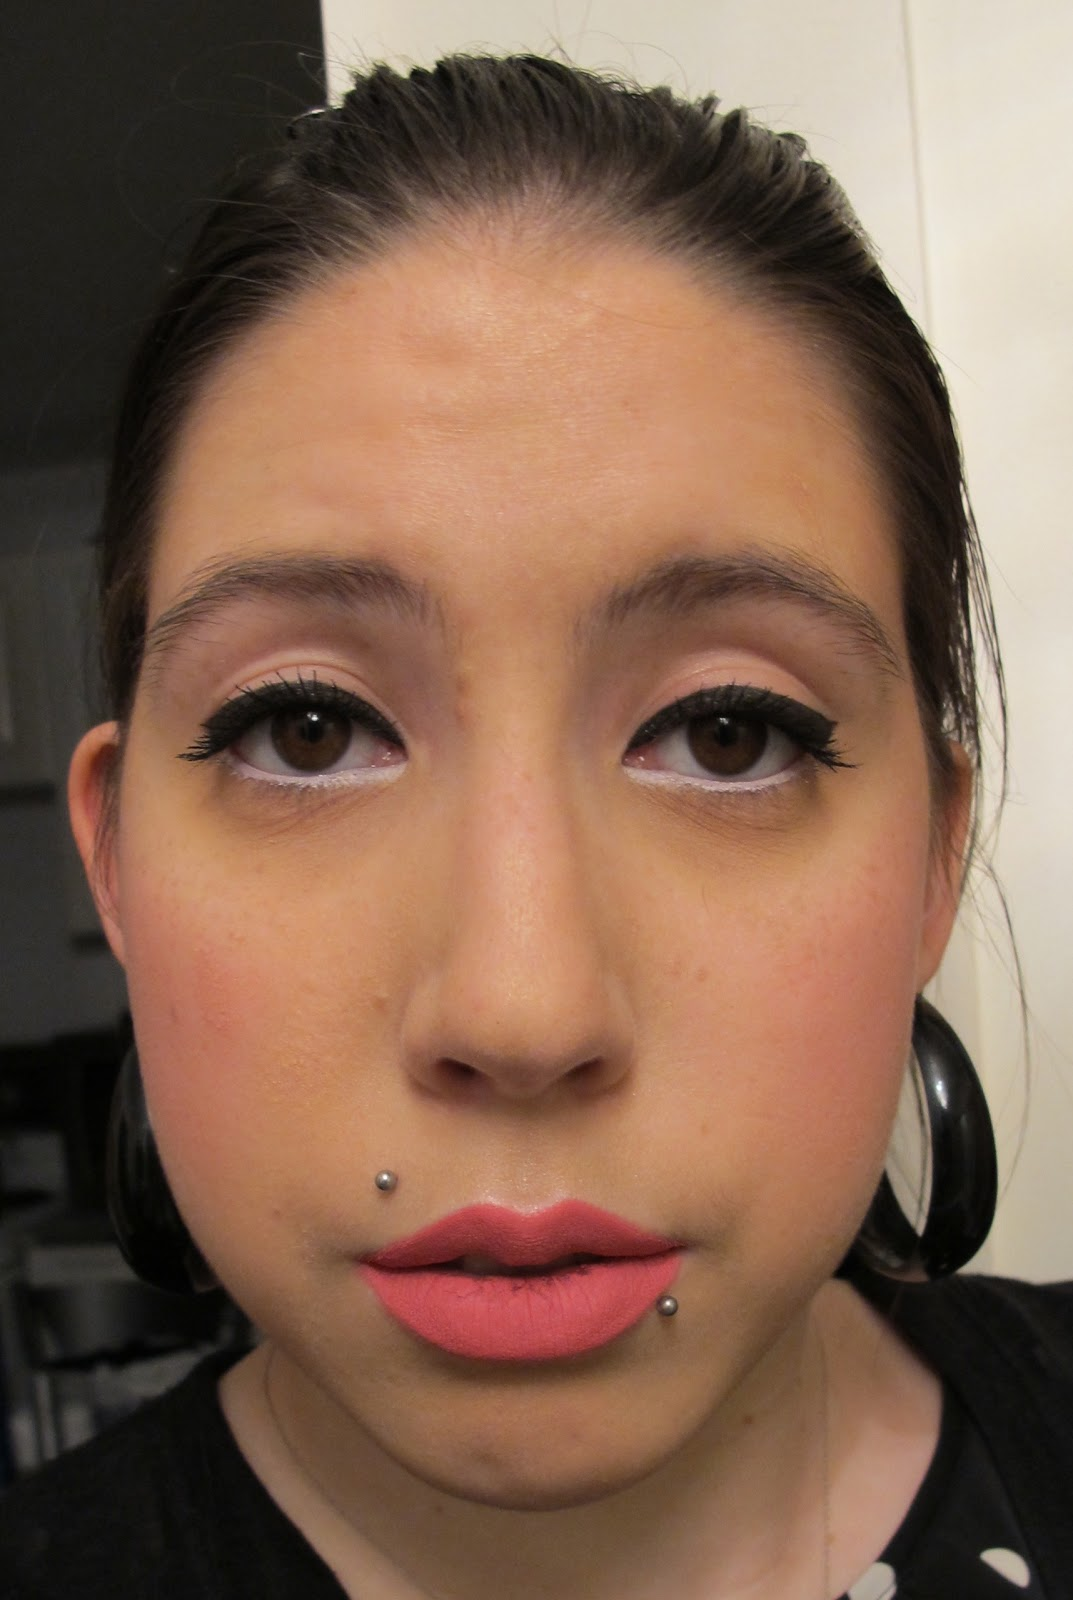 Steph Stud Makeup: Simple And Effortless Makeup Using Too